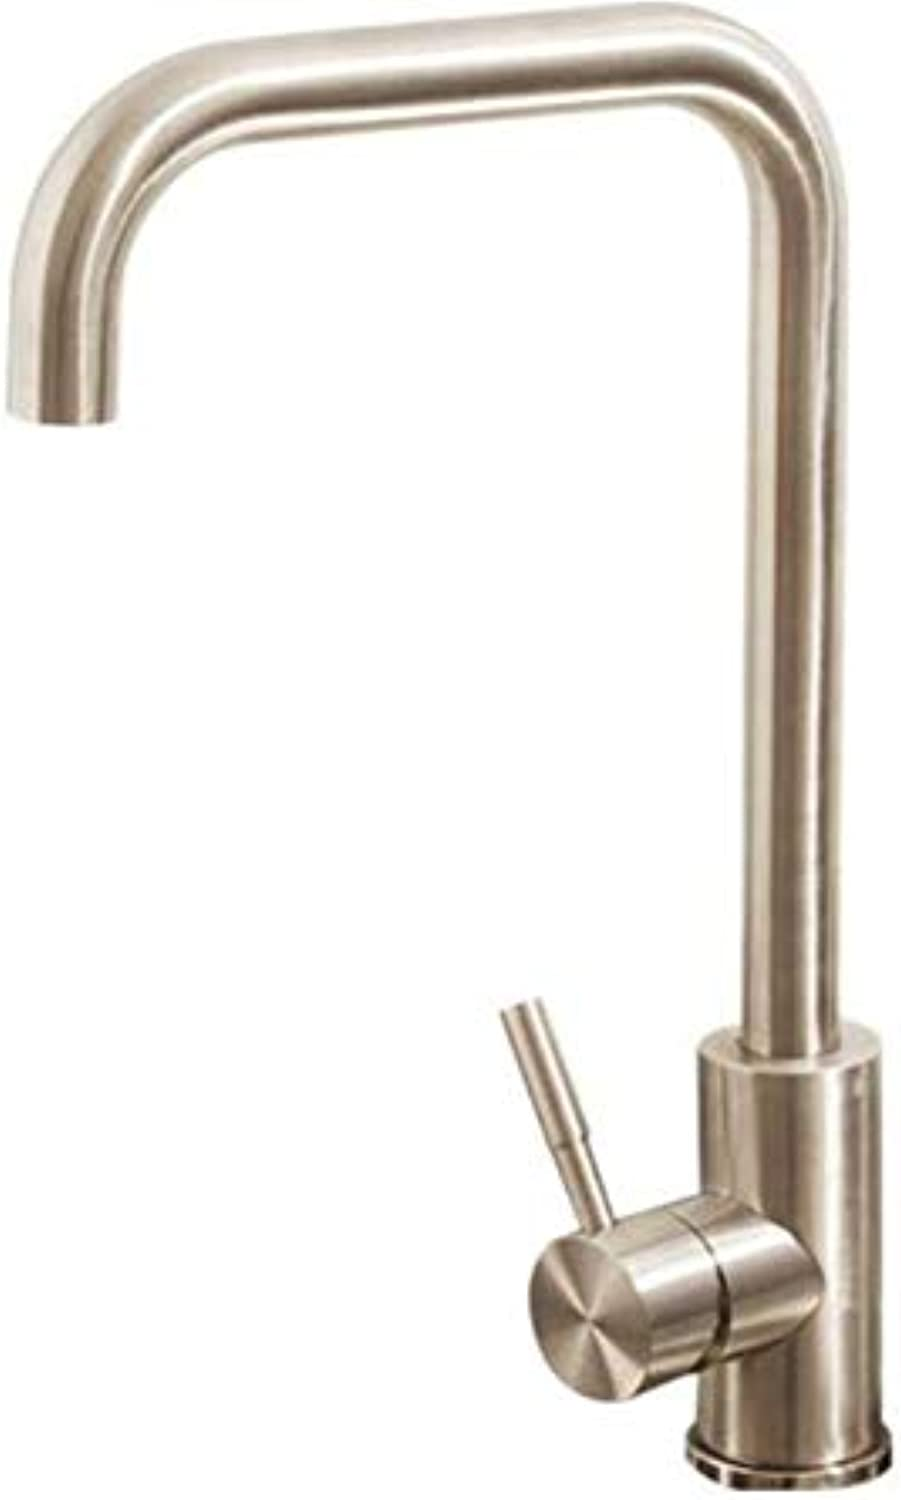 Taps Kitchen Sinktaps Mixer Swivel Faucet Sink Kitchen Faucet Hot and Cold 304 Stainless Steel Sink Sink